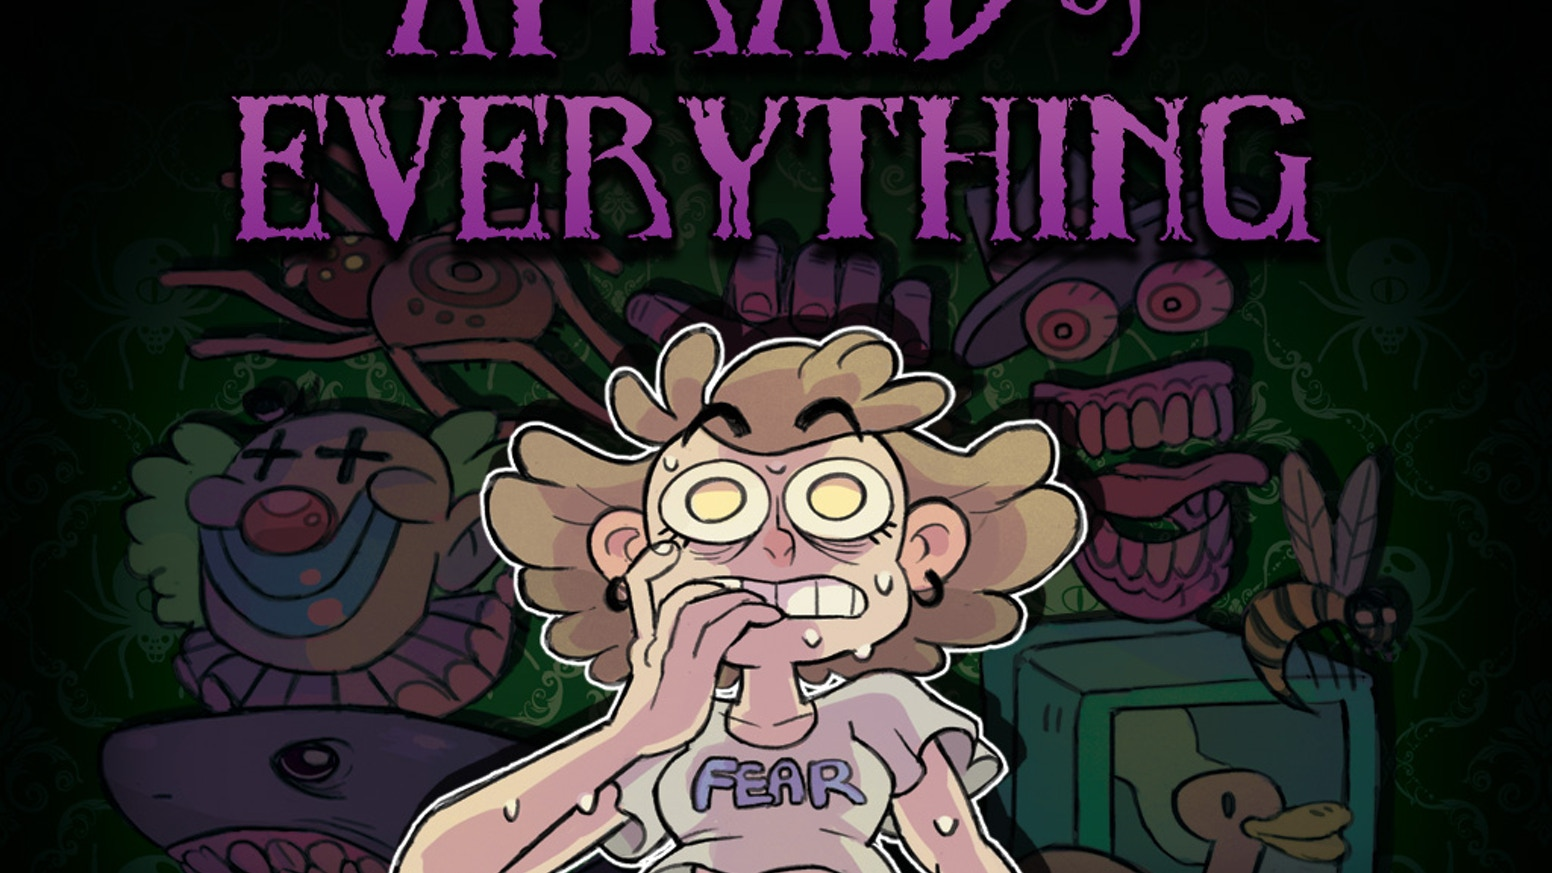 Afraid of Everything: Horror Stories for All Ages by Adam